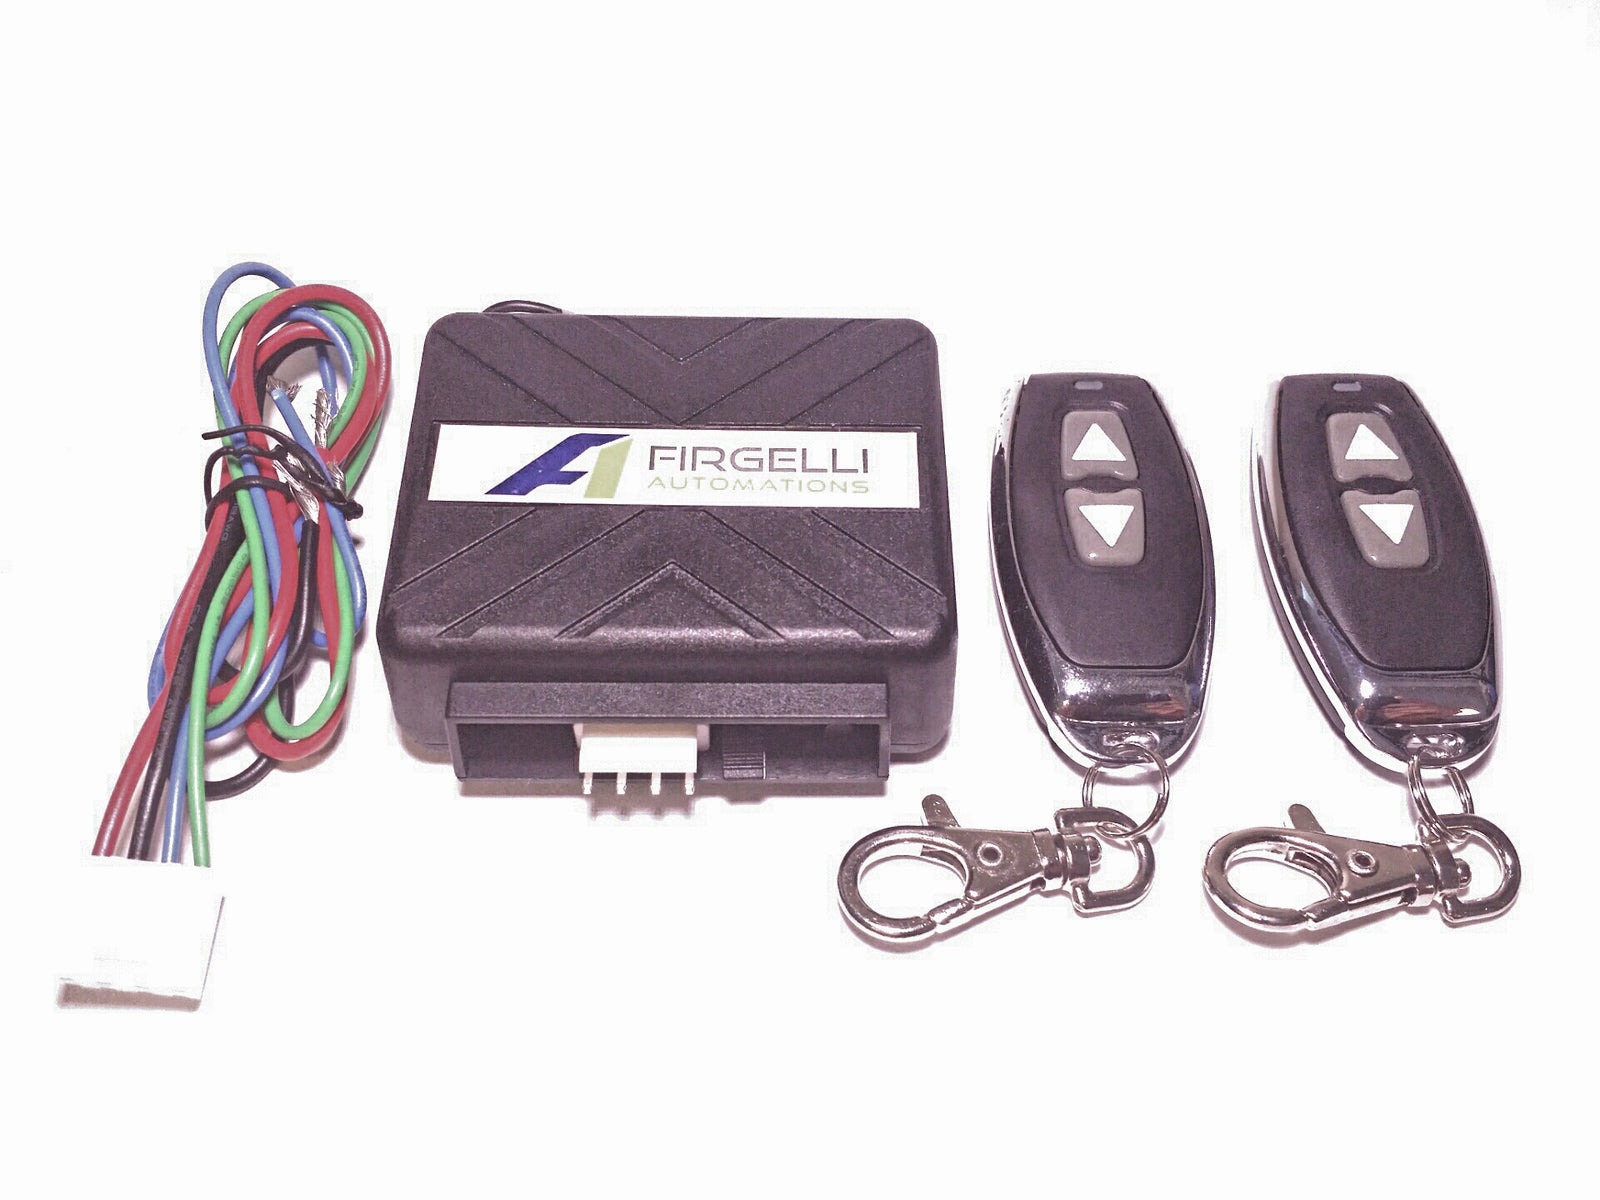 Two Channel Remote Control System | Firgelli